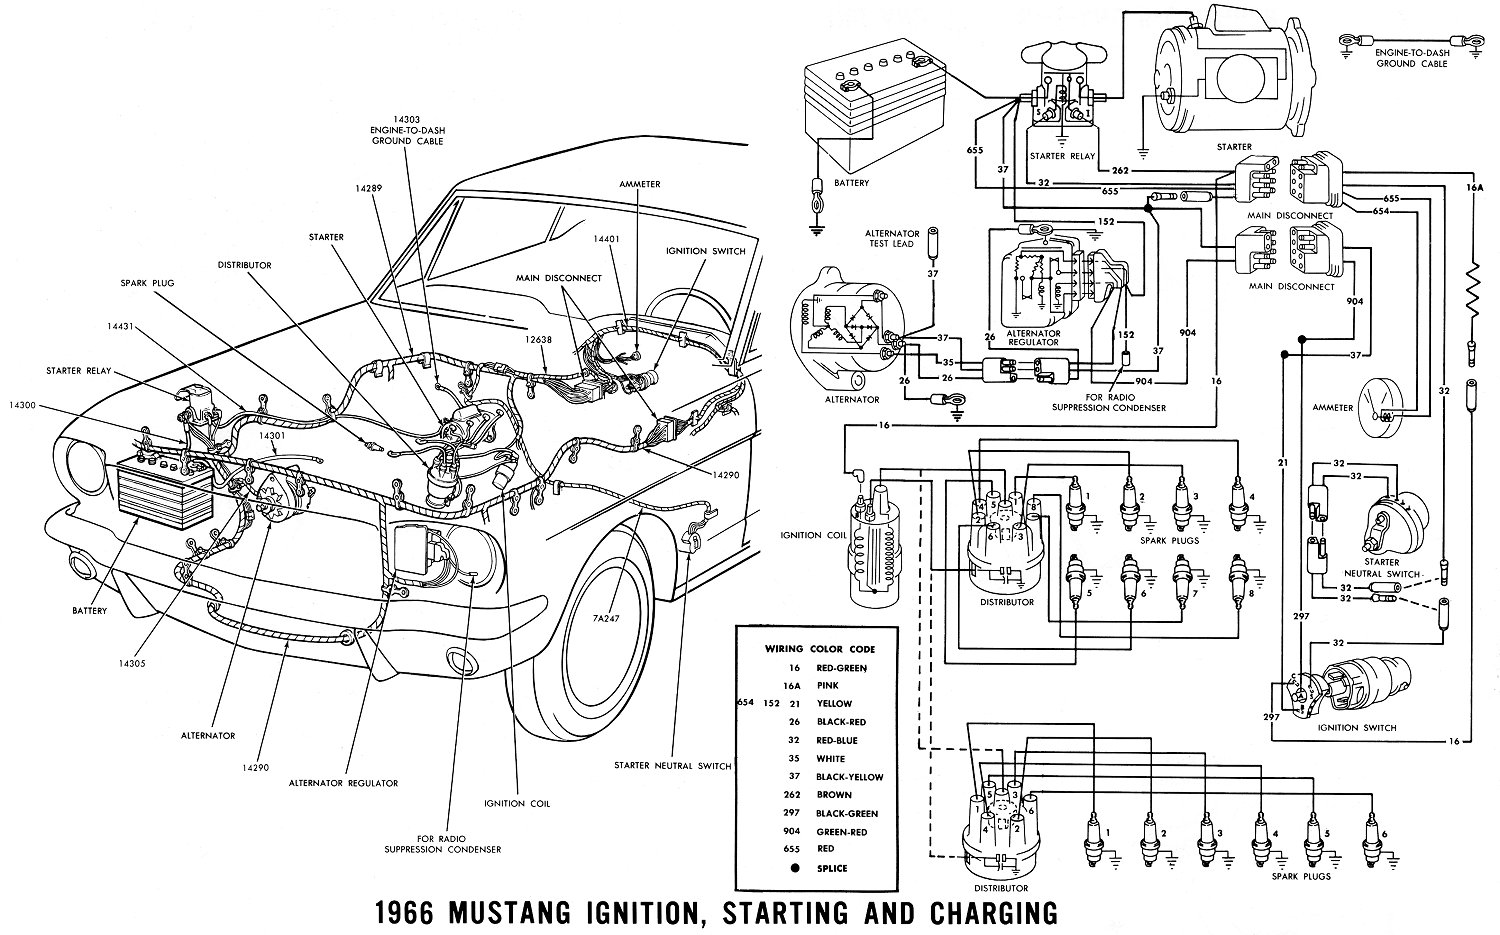 6a0rk Ford Mustang 1972 Mustang Standard Not Tilt Steering in addition T V6 3 further 66 Mustang Steering Parts moreover 72 Charger Wiring Diagram besides 68 Volkswagen Beetle Parts. on 73 charger front suspension diagram